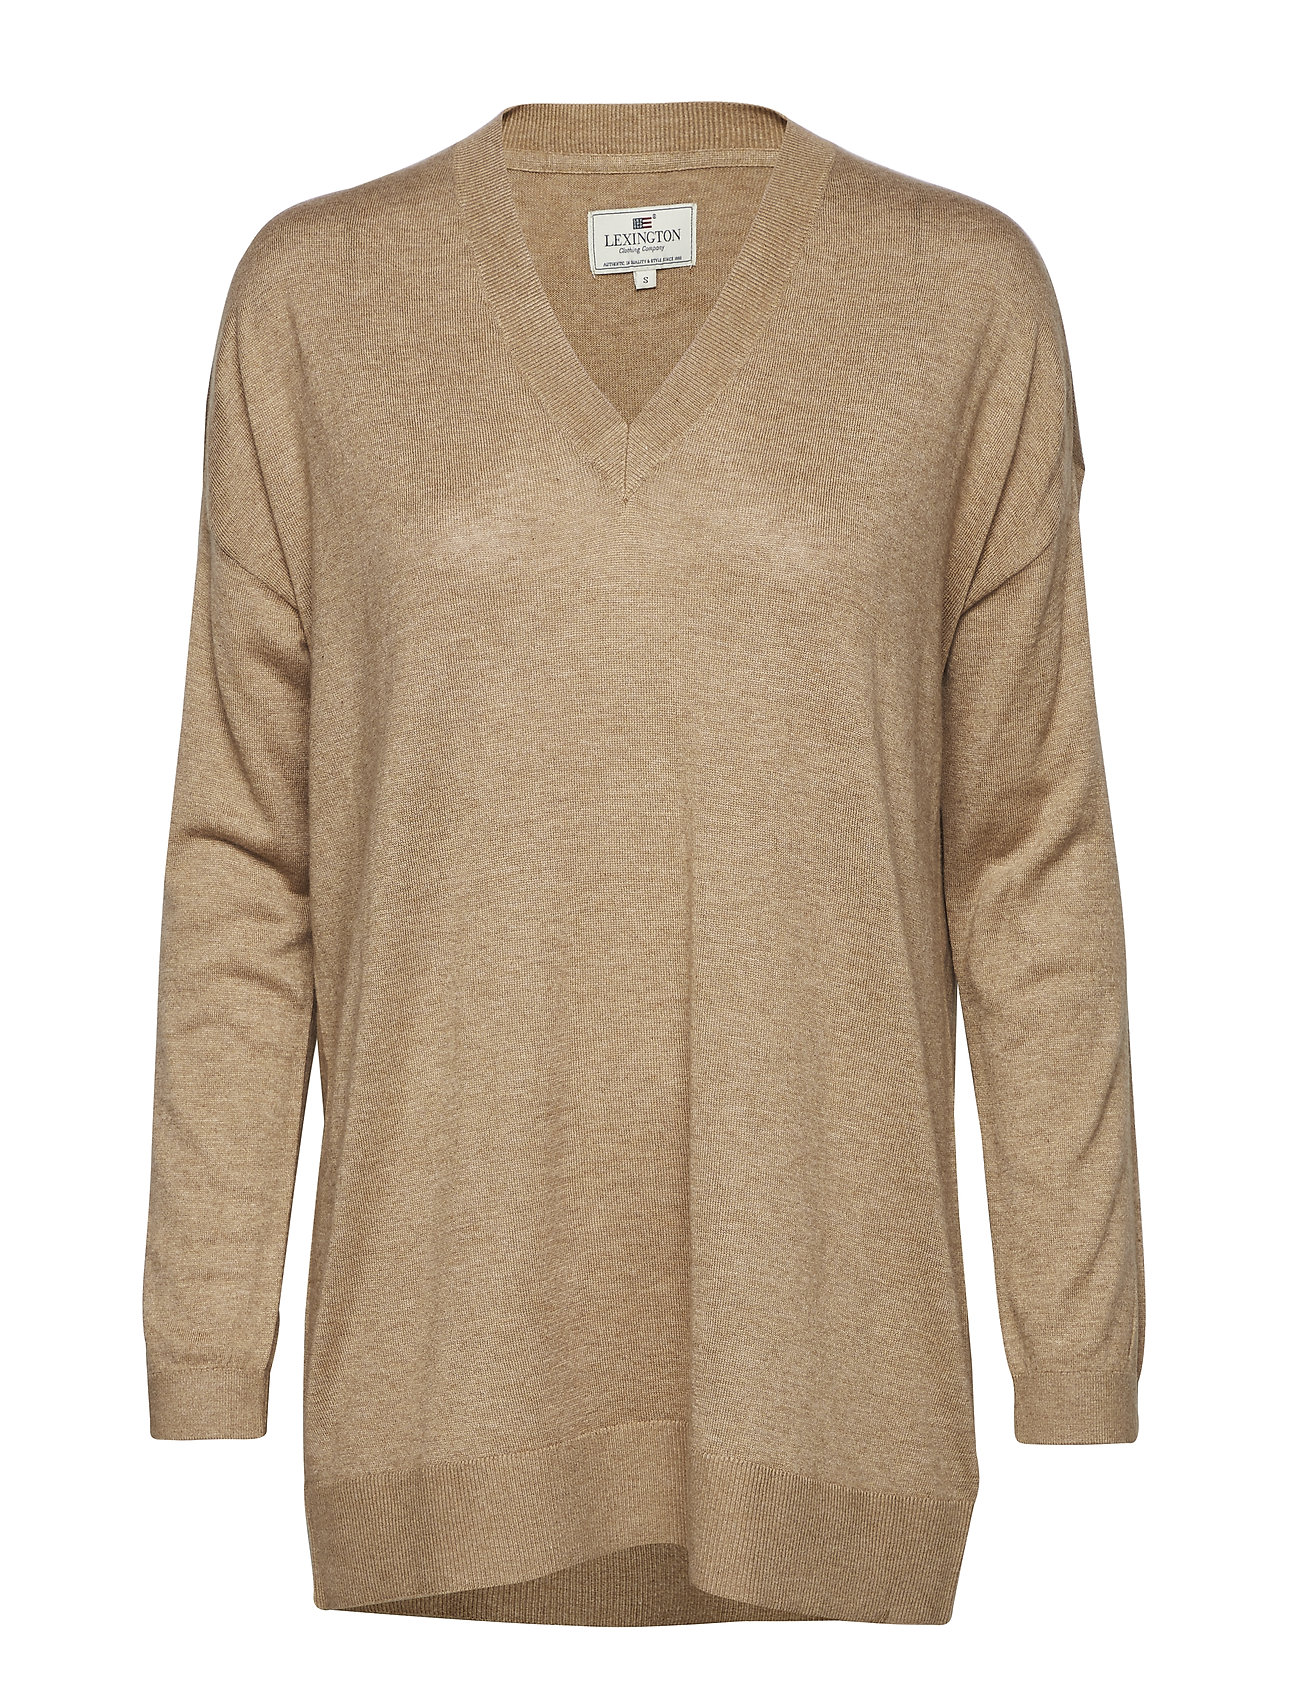 Lexington Clothing Ana Cotton Bamboo Sweater - CAMEL